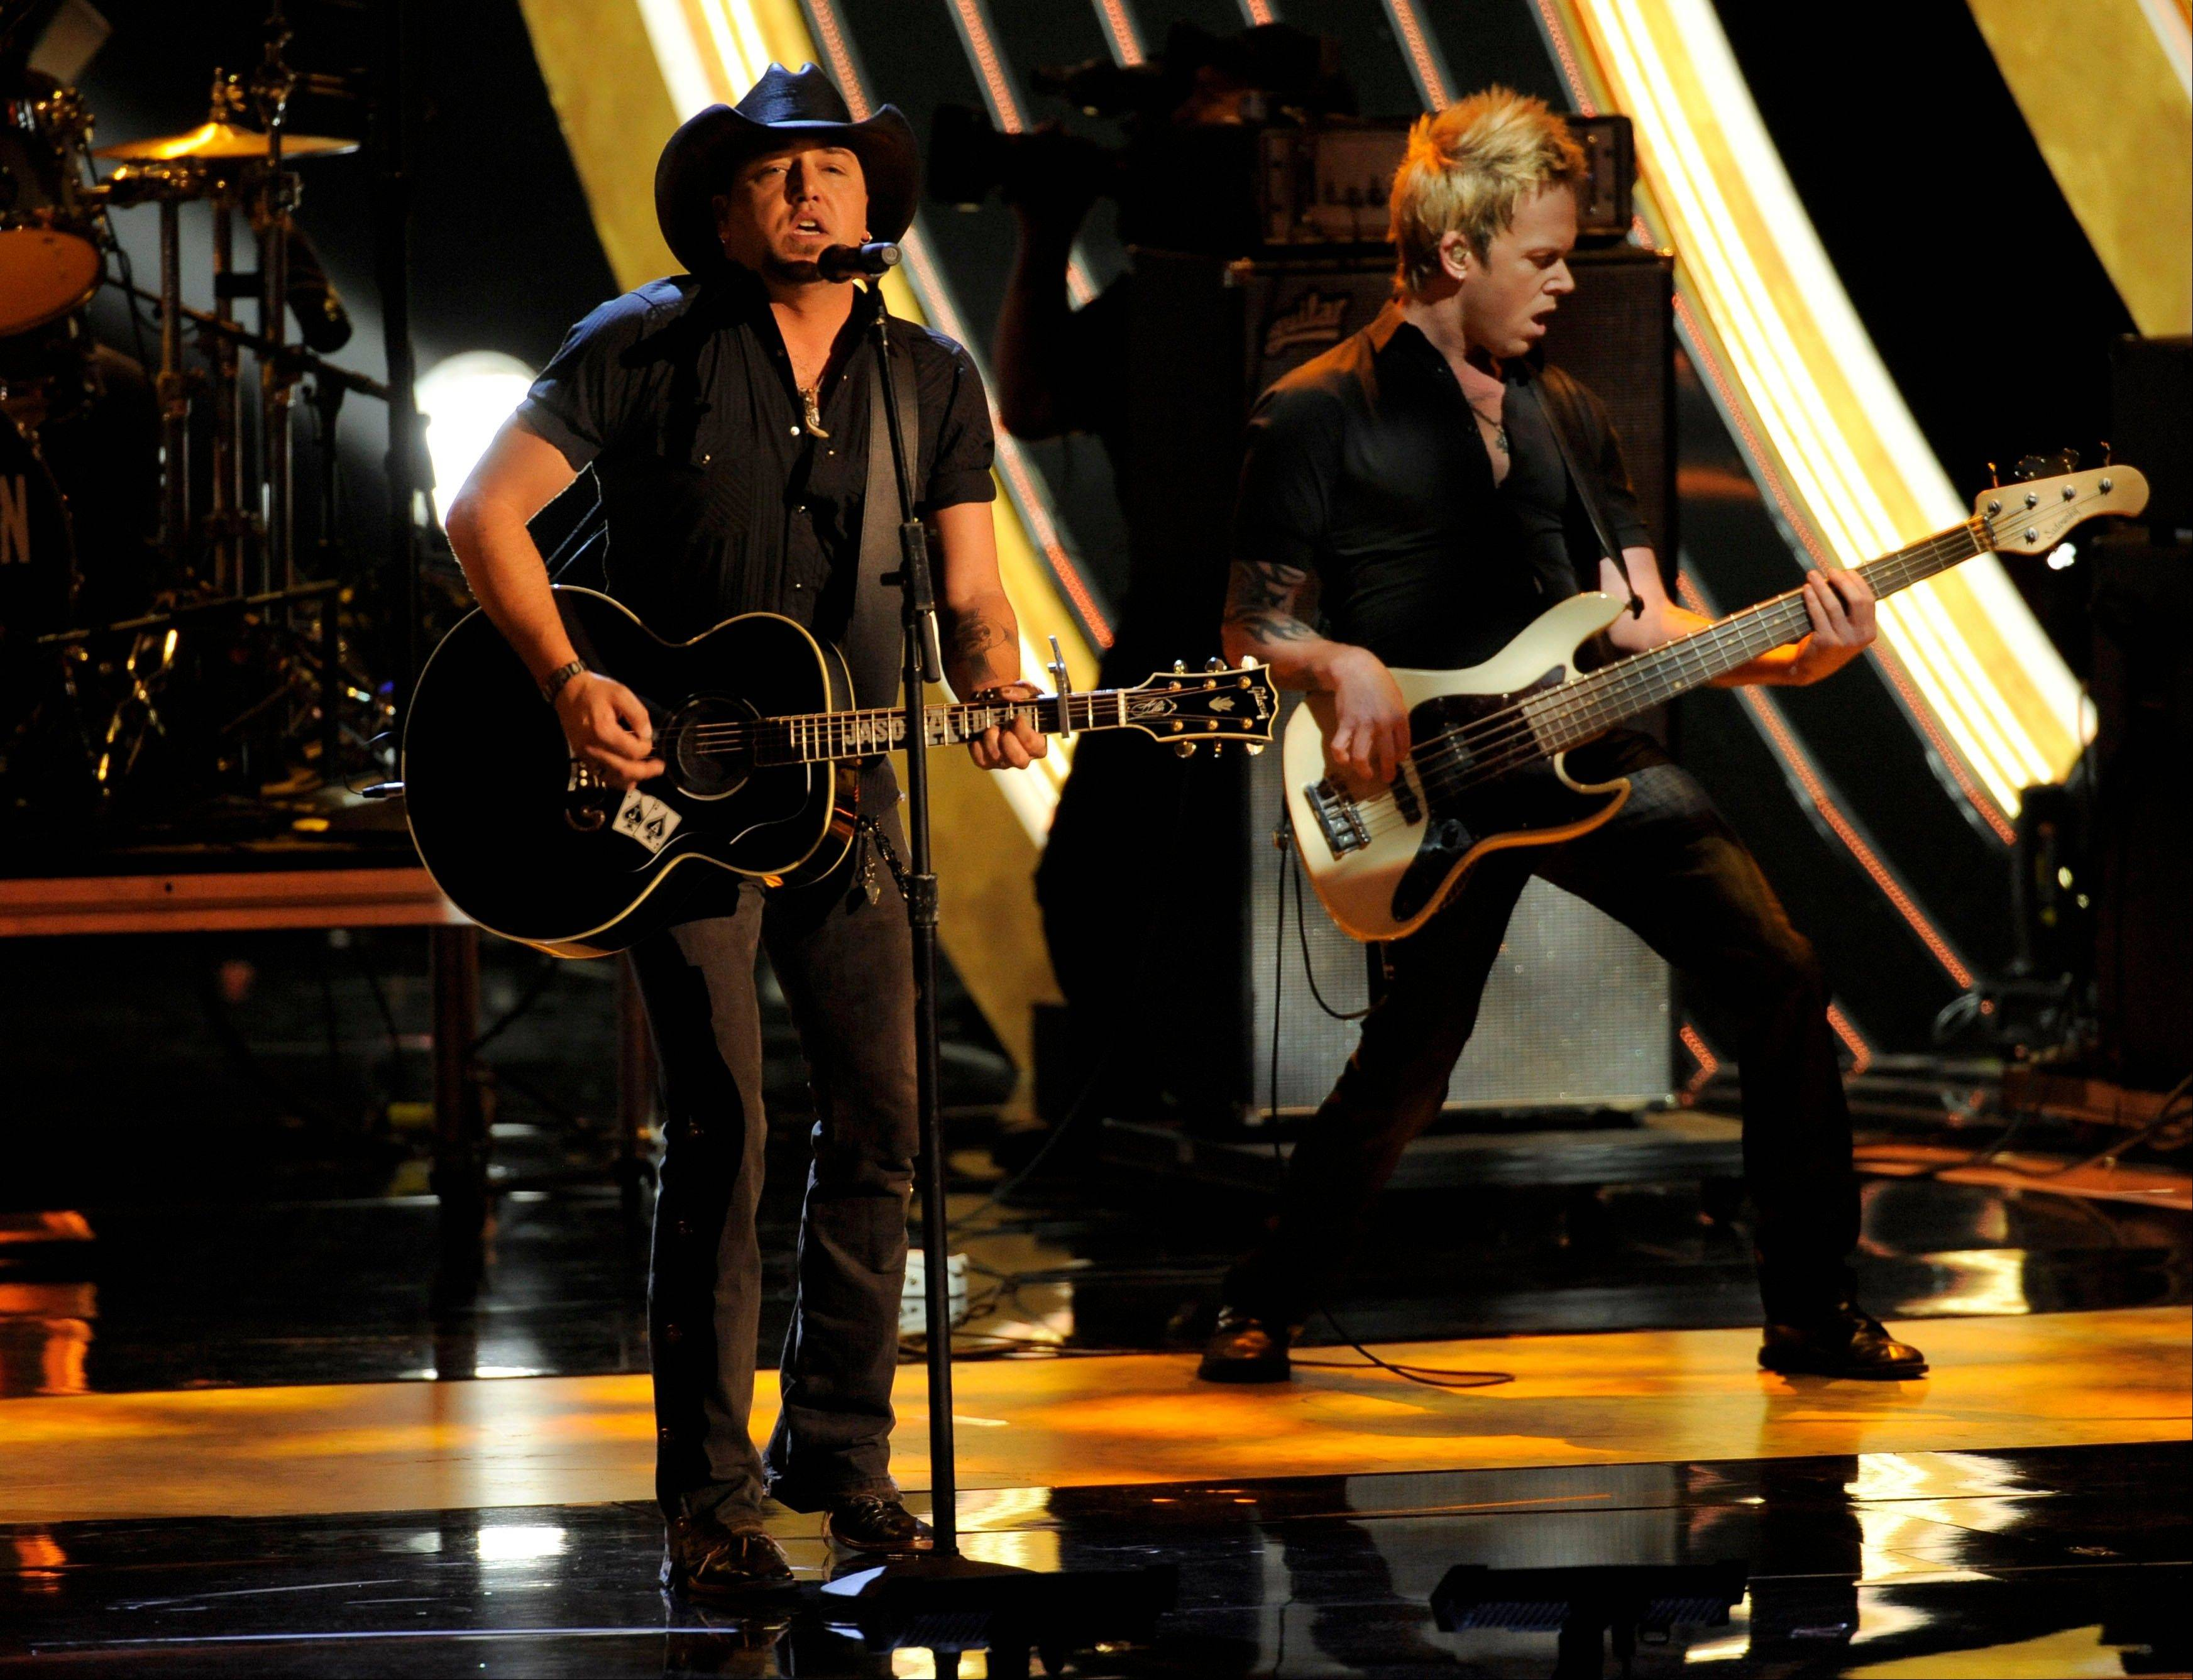 Jason Aldean, left, performs at the People's Choice Awards at the Nokia Theatre on Wednesday Jan. 9, 2013, in Los Angeles.